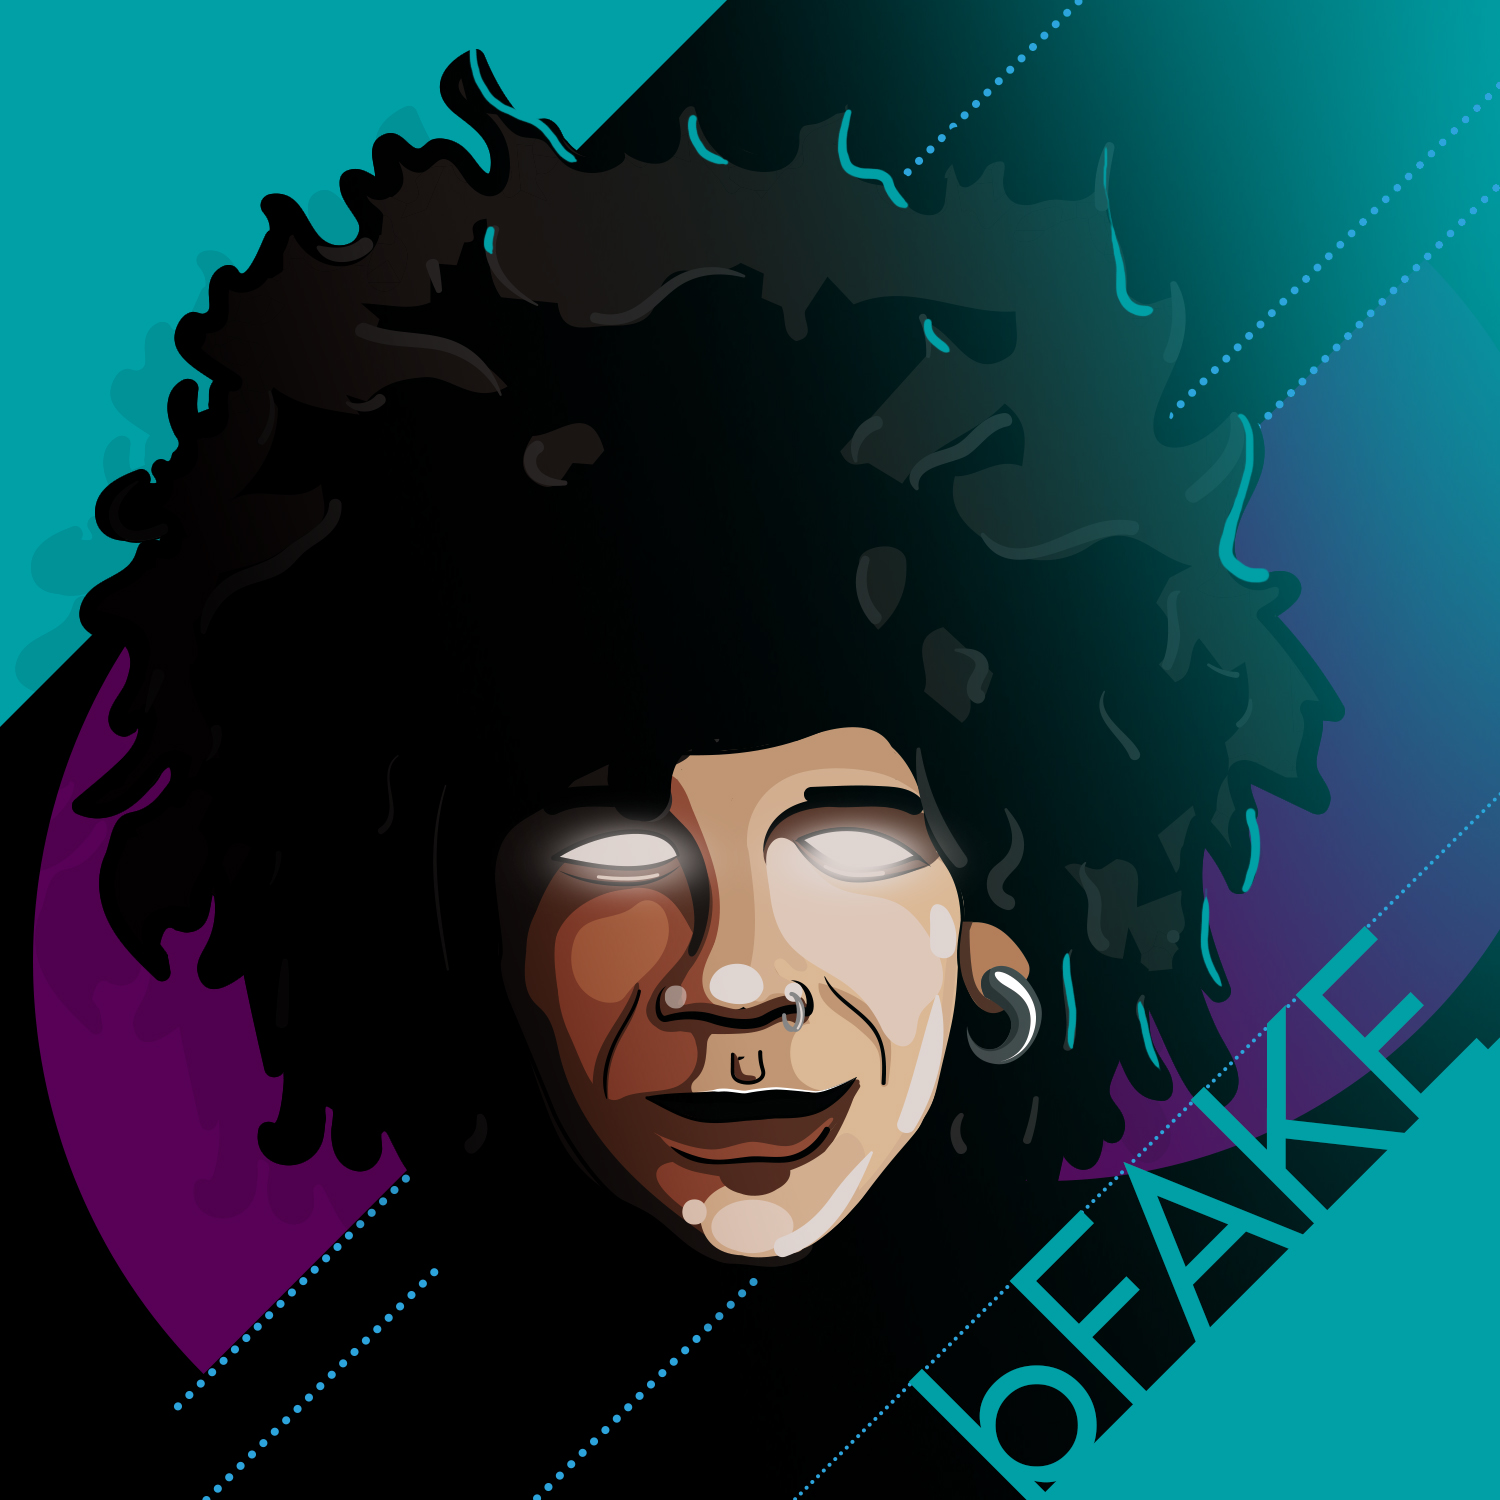 bFAKE illustration